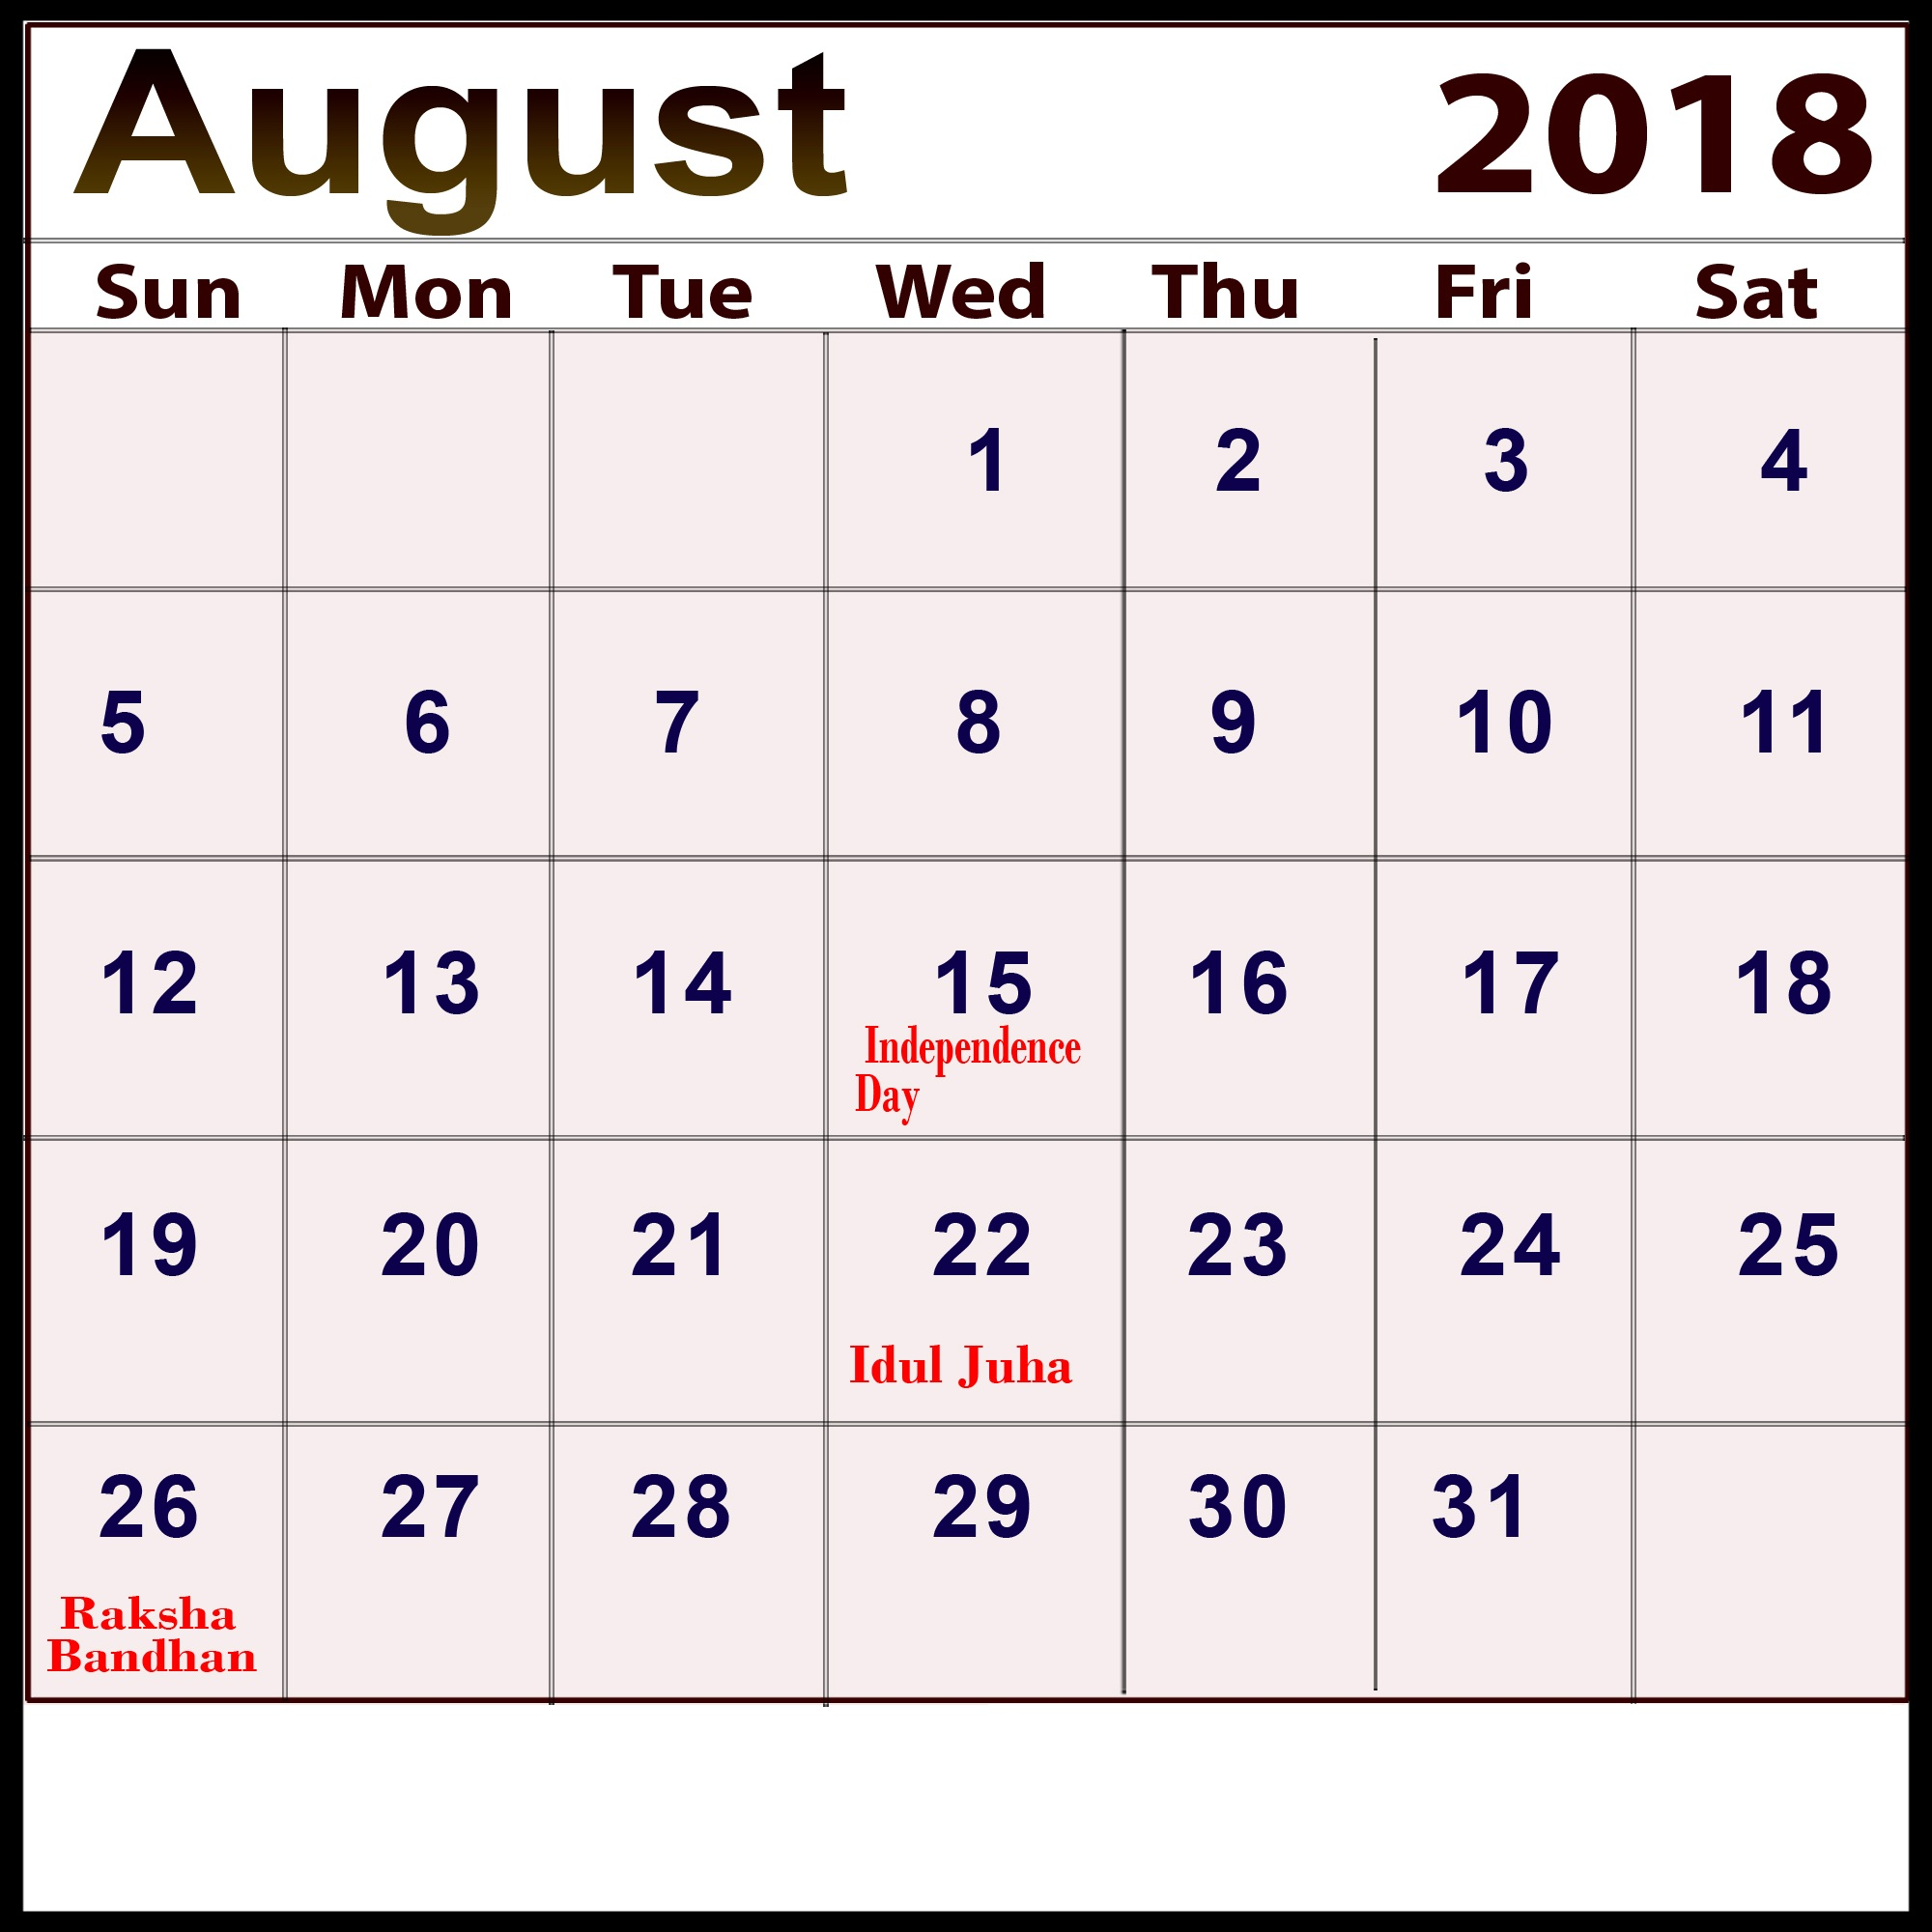 Calendar August 2018 India With Holidays